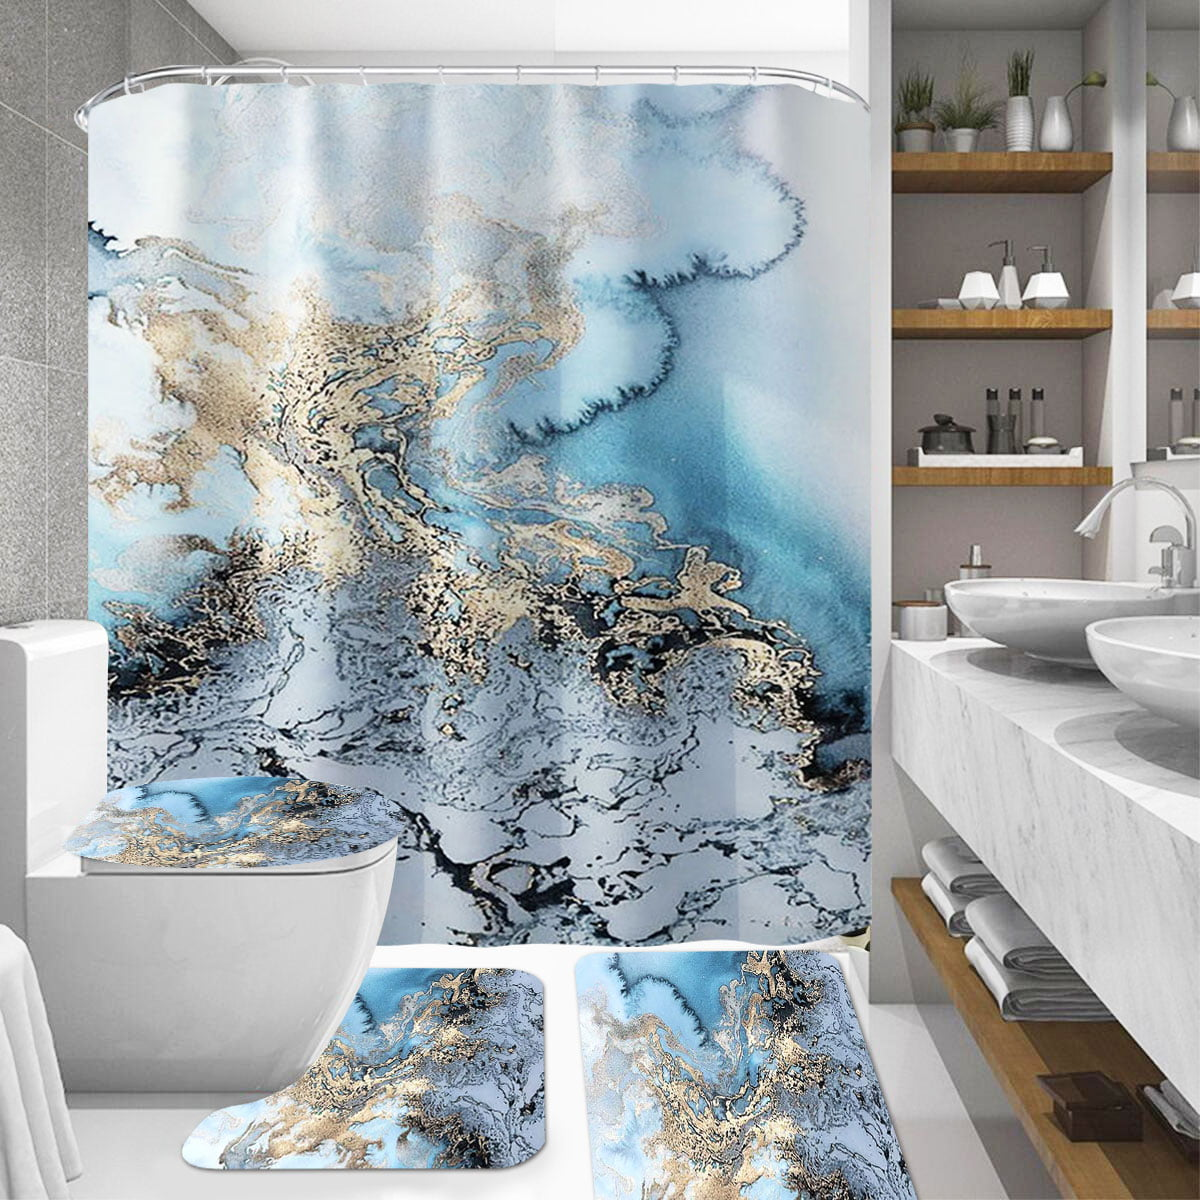 4 Piece Shower Curtain Set With Rugs, Marble Bathroom Set With Shower Curtain